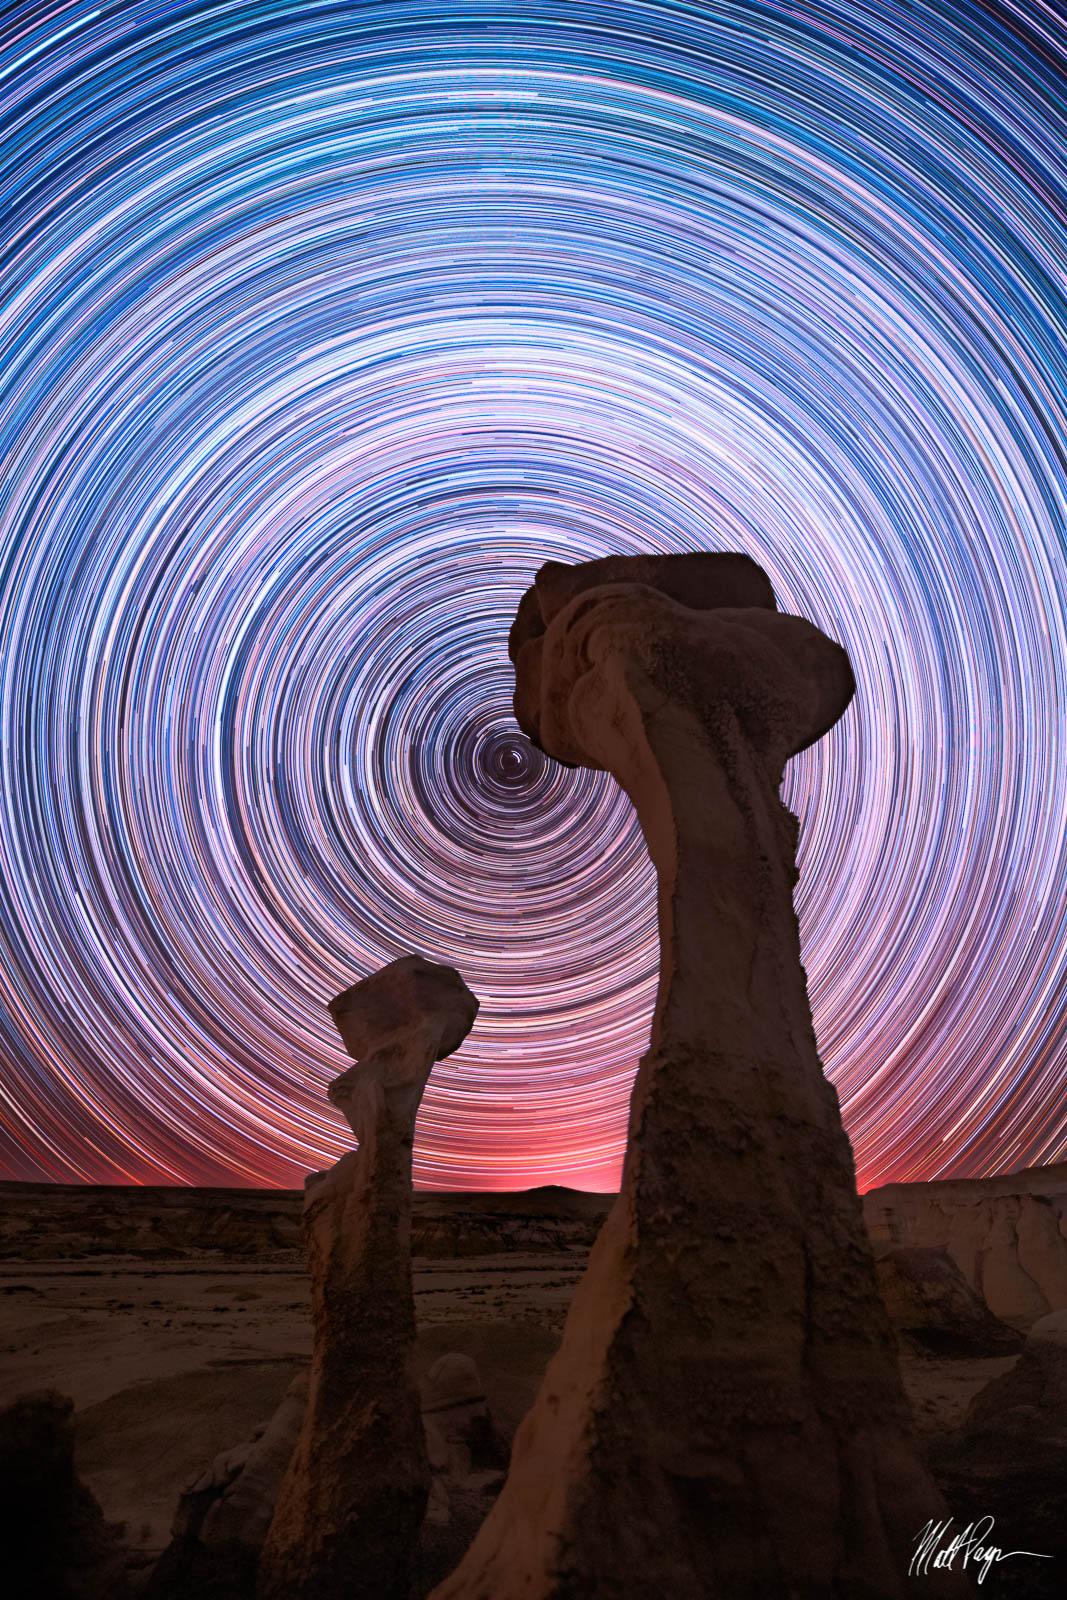 Bisti Badlands, De-Na-Zin Wilderness, Hoodoo, Hoodoos, Landscape, Long Exposure, New Mexico, Nightscape, North Star, Polaris, Star Trails, Stars, Wilderness, desert, E.T., Landscape Photography, photo